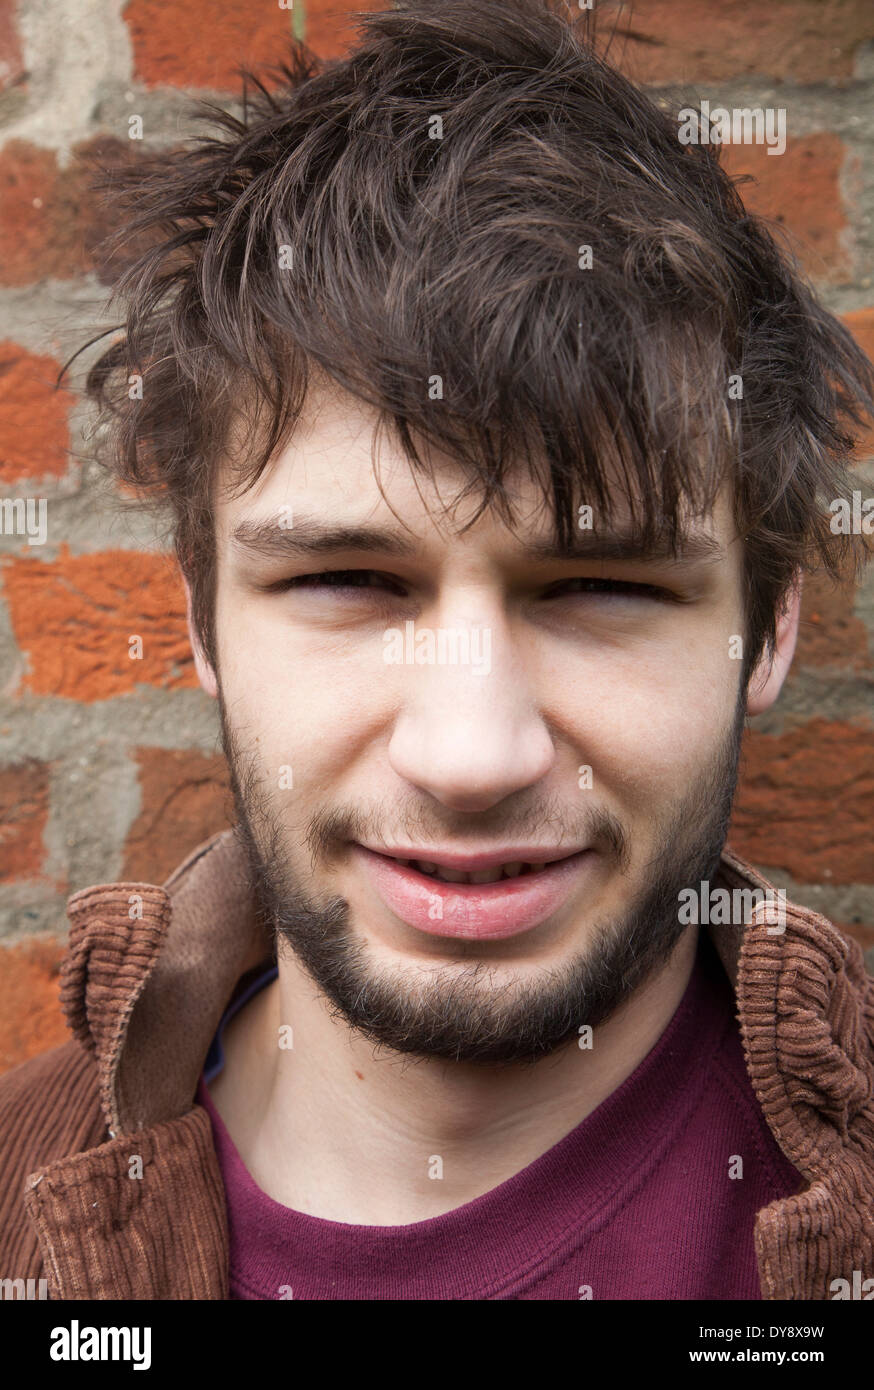 Model released close up portrait of 20 year old man with beard, UK - Stock Image